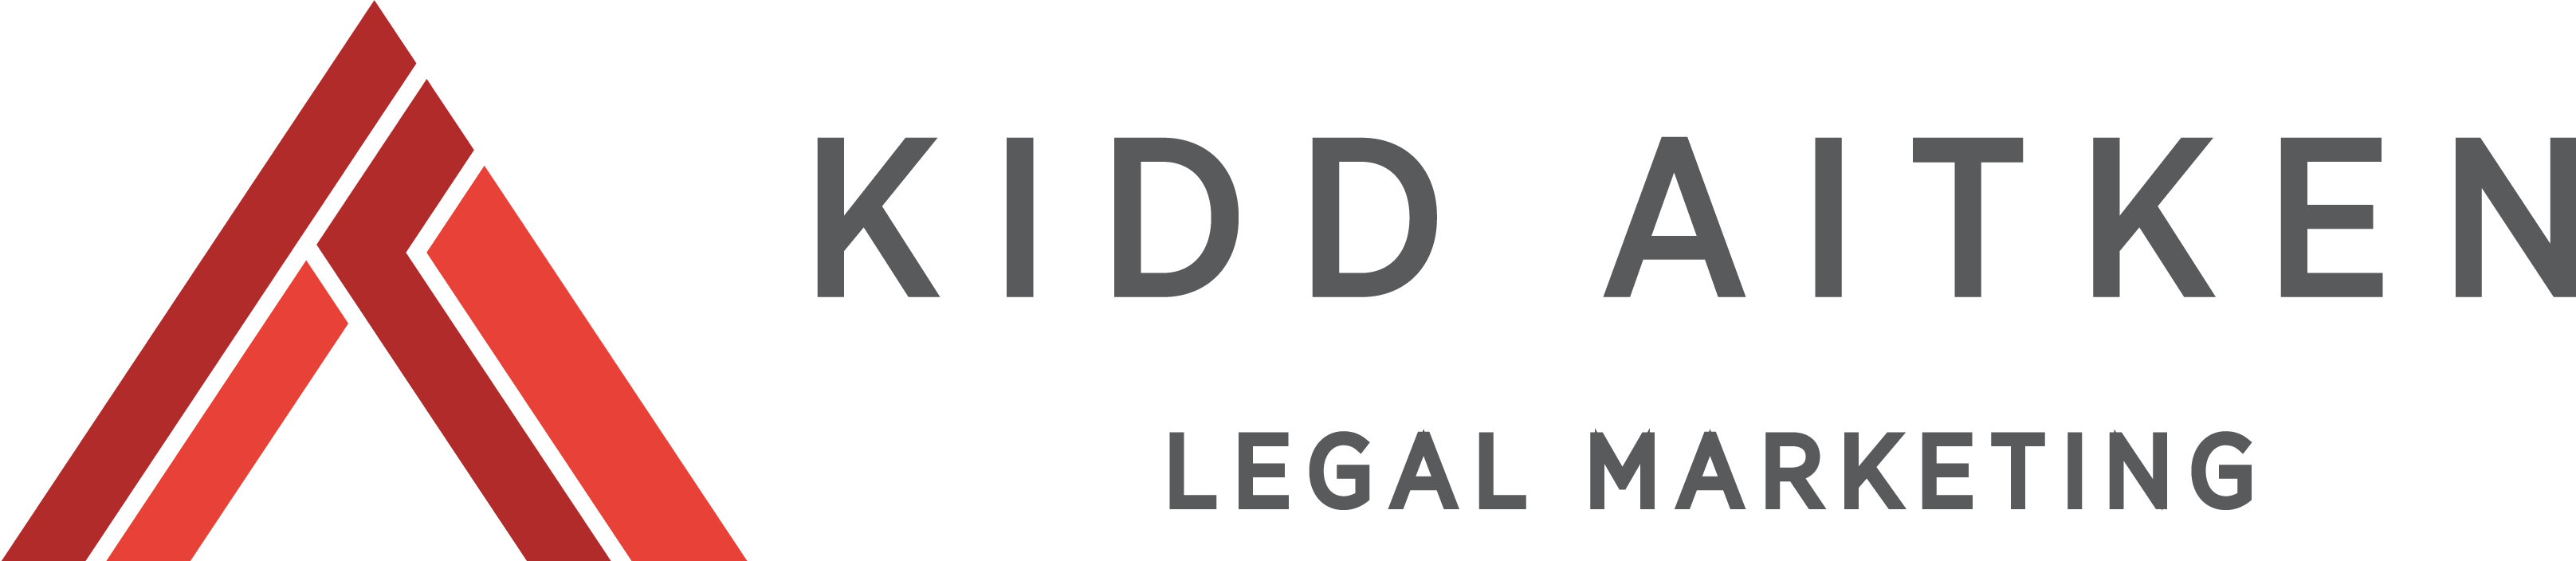 Kidd Aitken Legal Marketing LTD